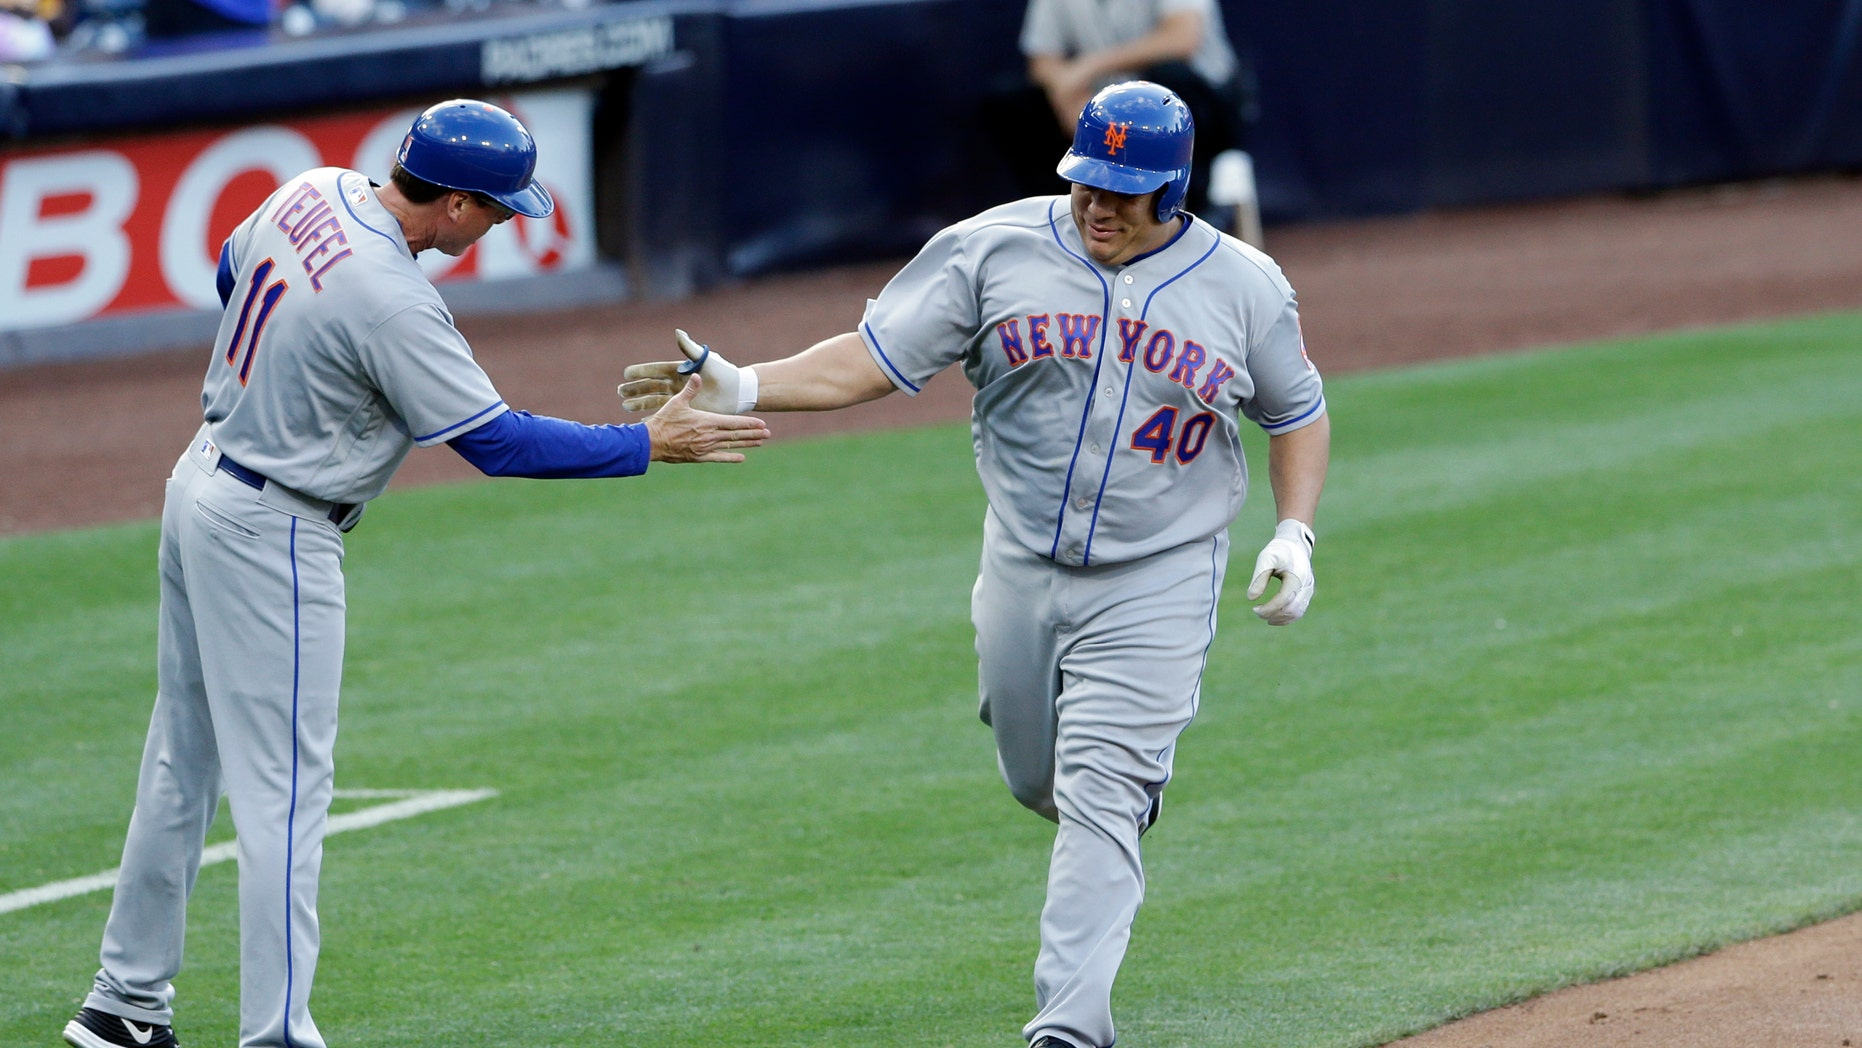 Bartolo Colon is greeted by third base coach Tim Teufel after hitting his first career home run.